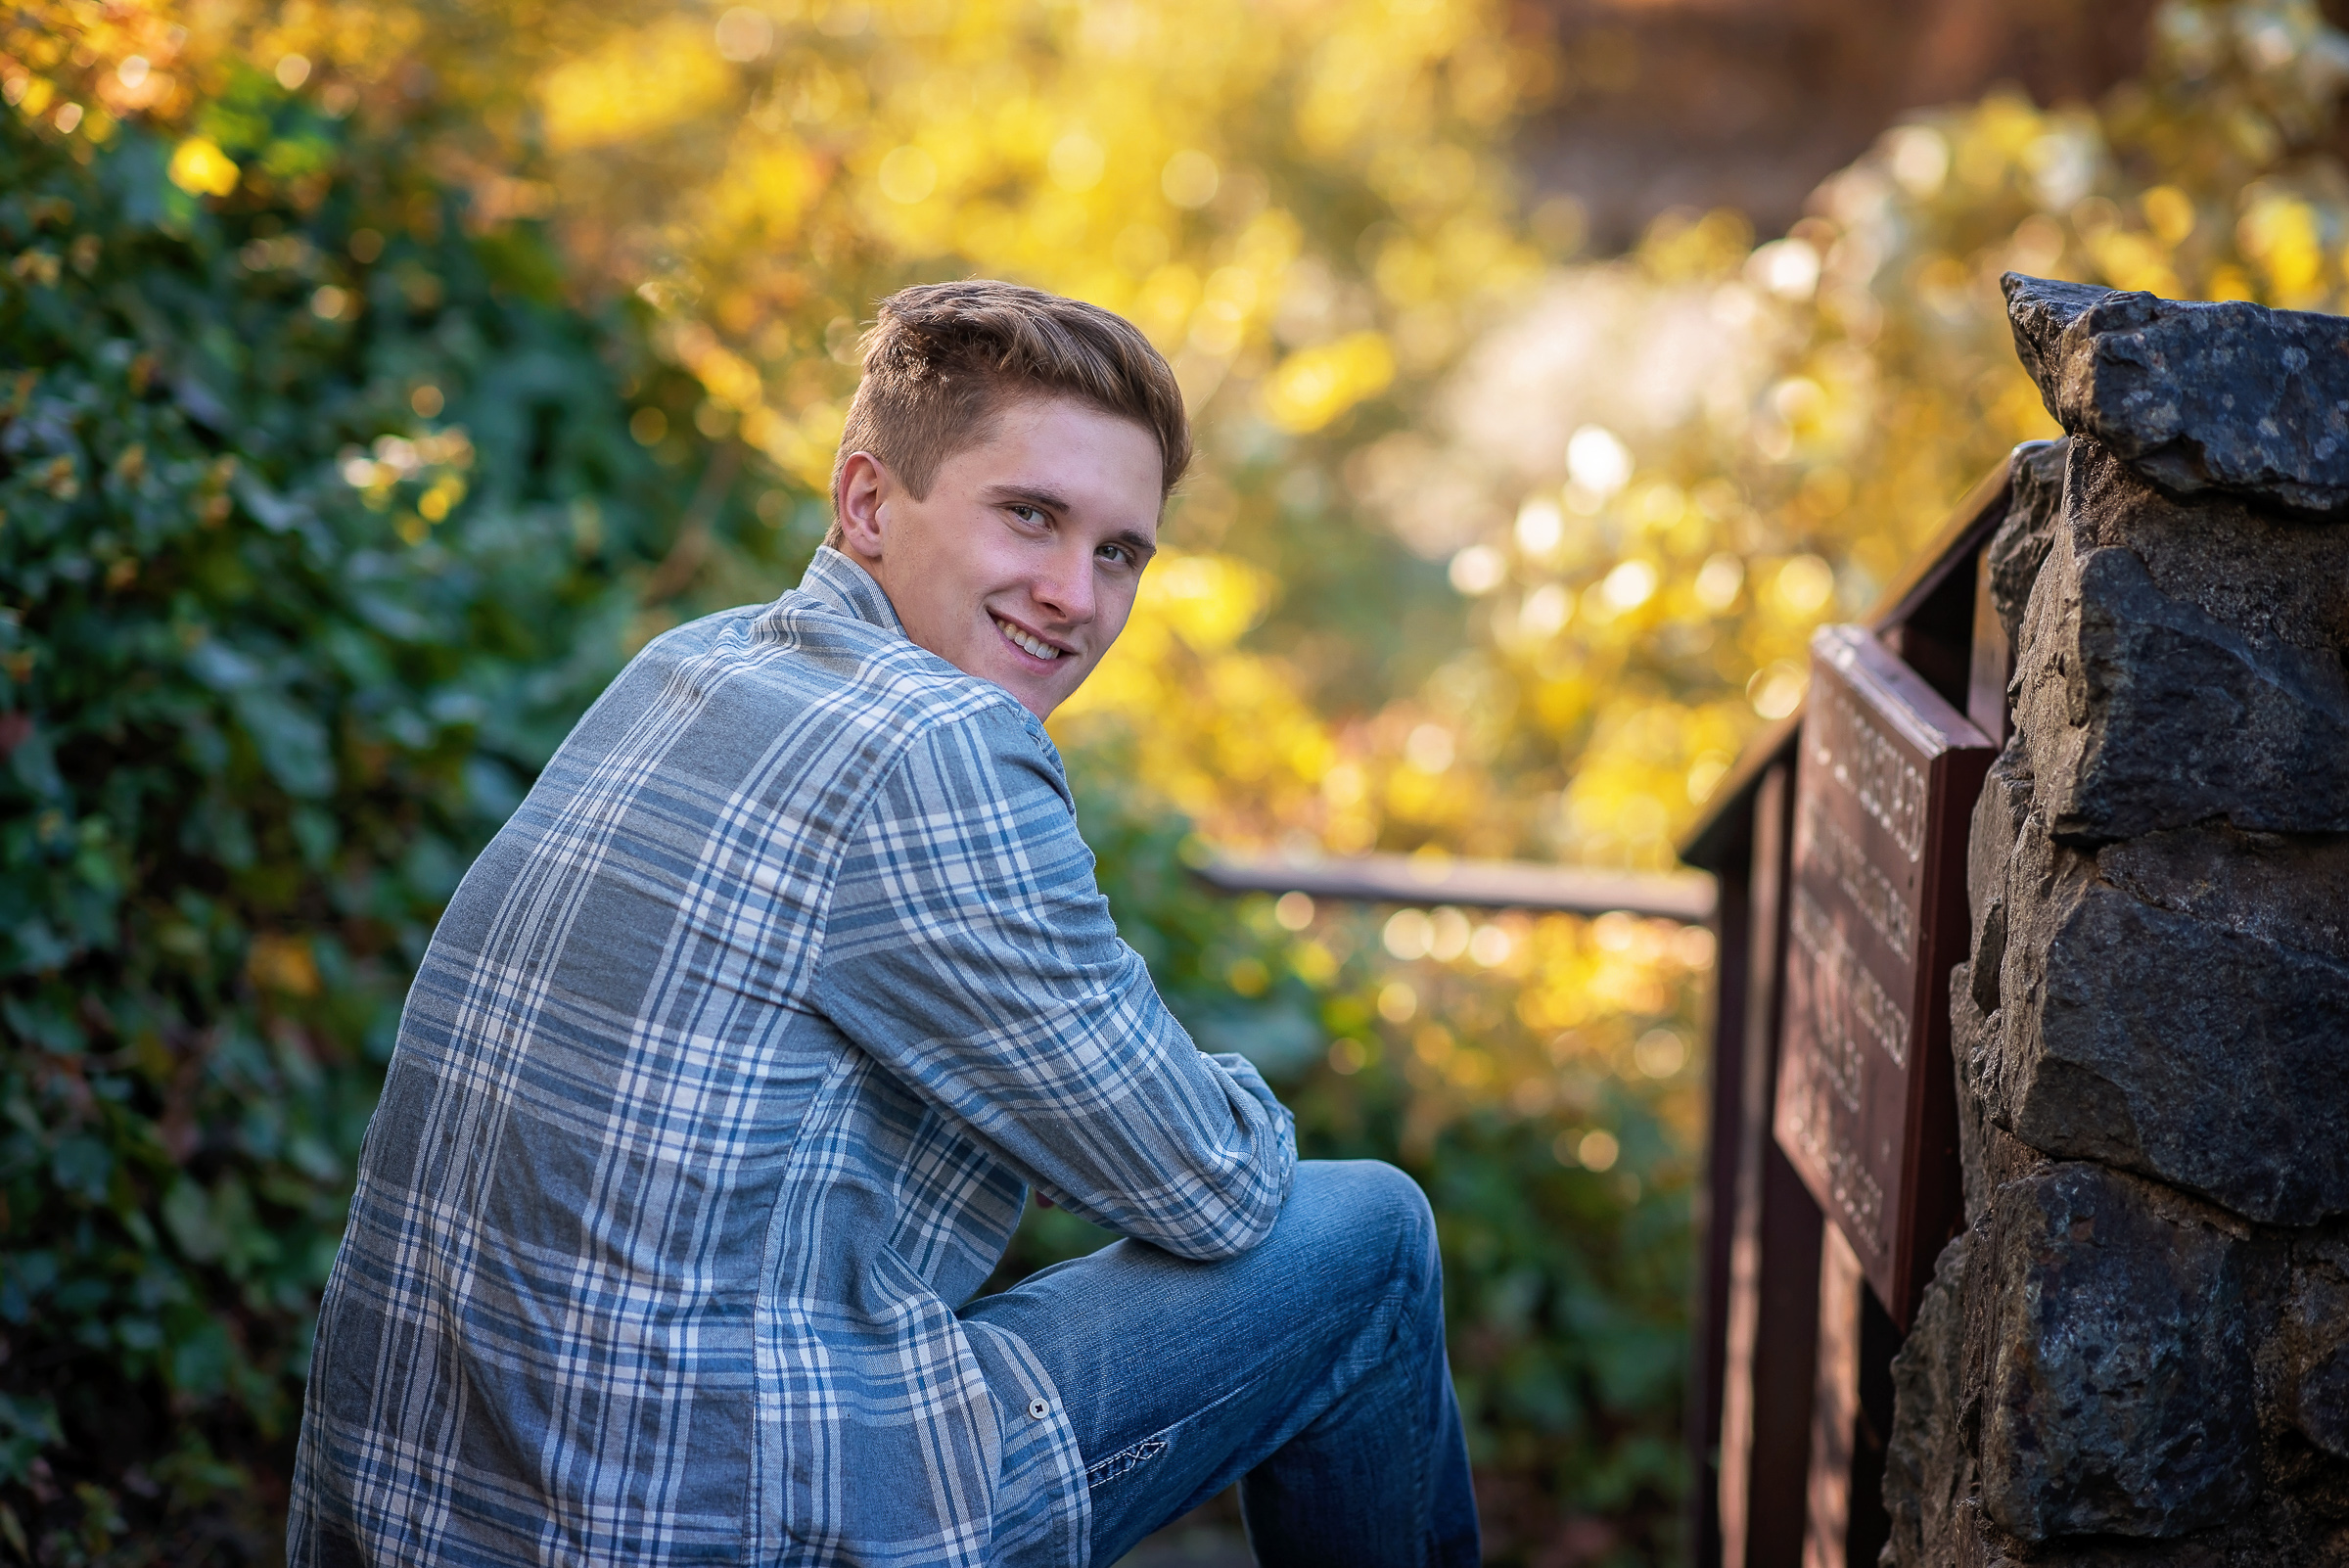 Cody's-Benbow Inn-Humboldt County-Senior Session-Parky's Pics_-8.JPG